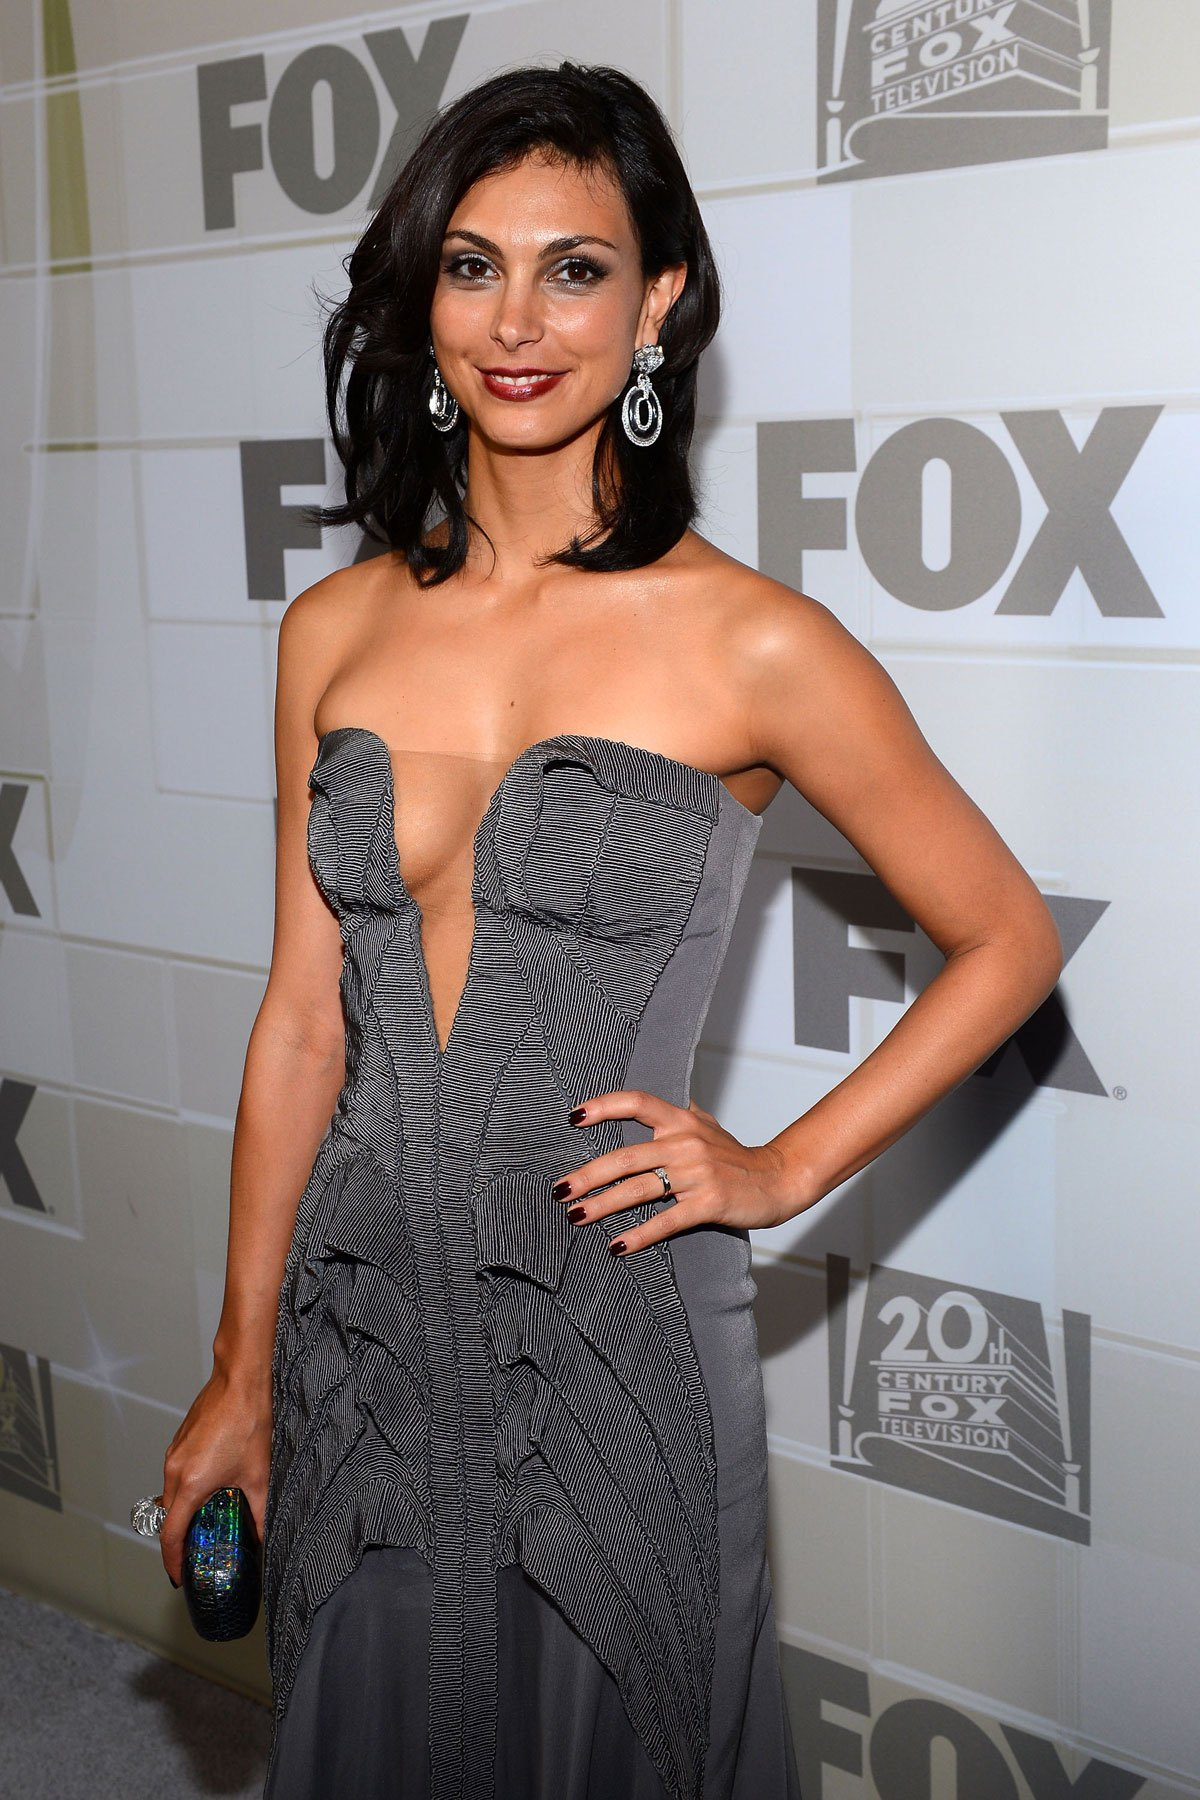 MORENA BACCARIN At FOX And FX Emmy After Party